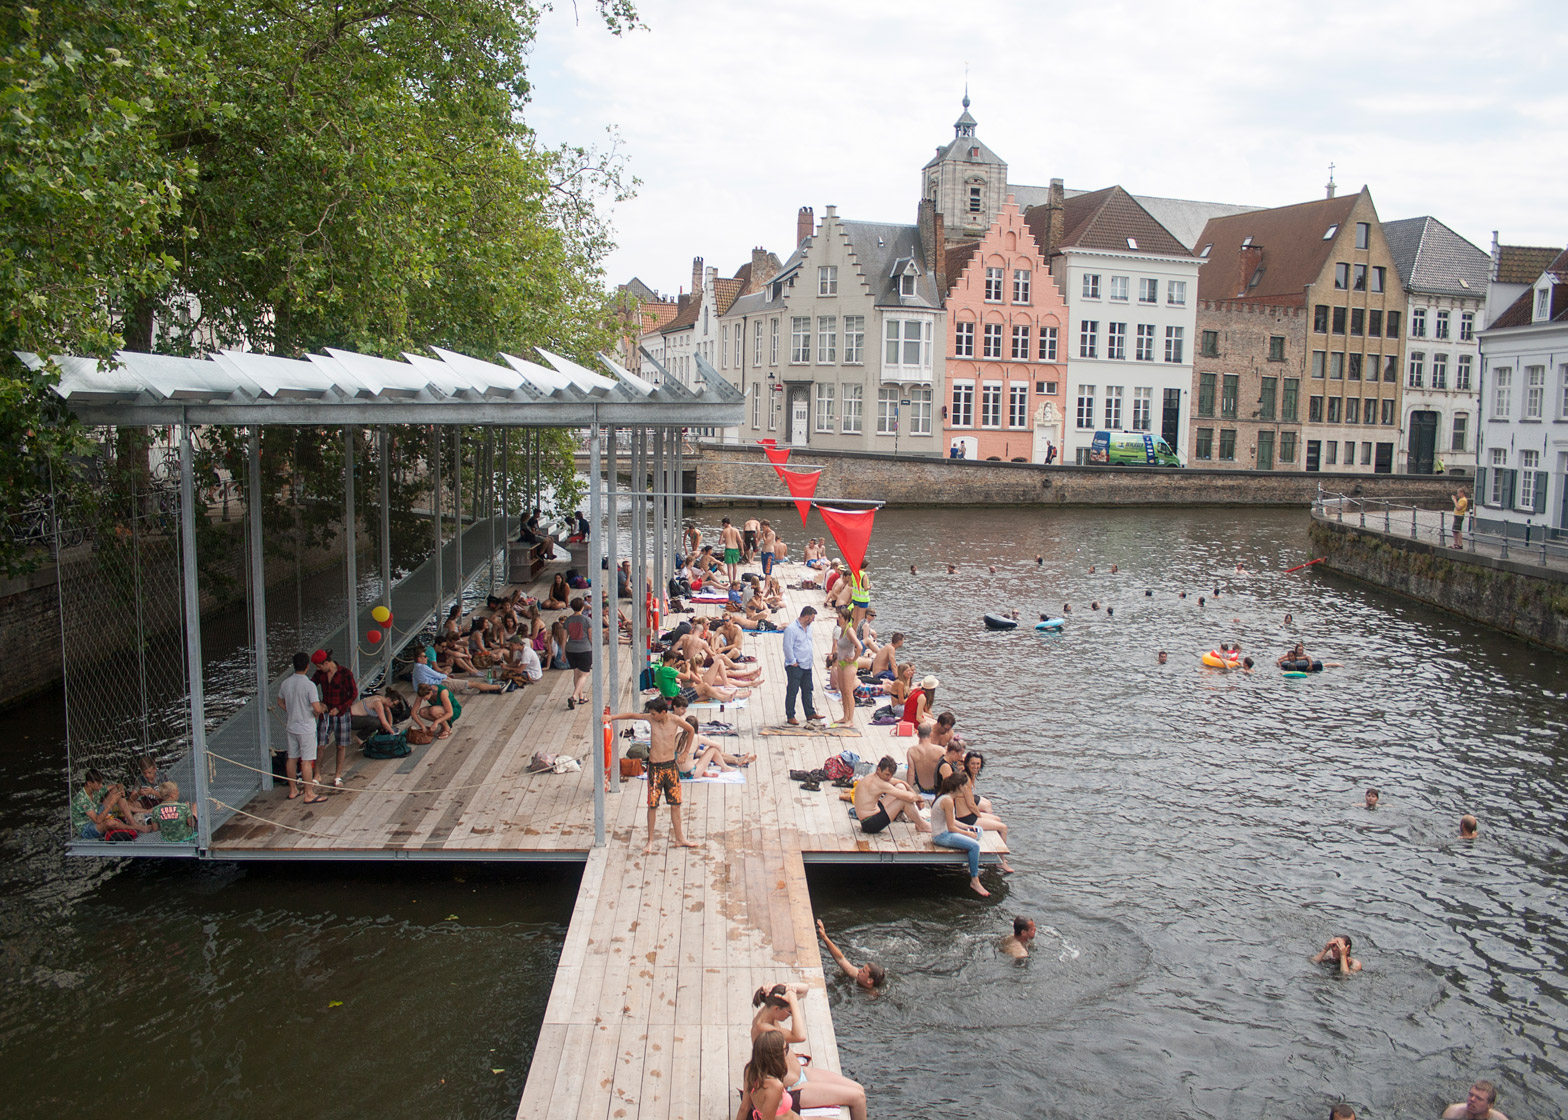 Canal Swimmer's Club by Atelier Bow-Wow + Architectuuratelier Dertien 12 for Belgian Triennial